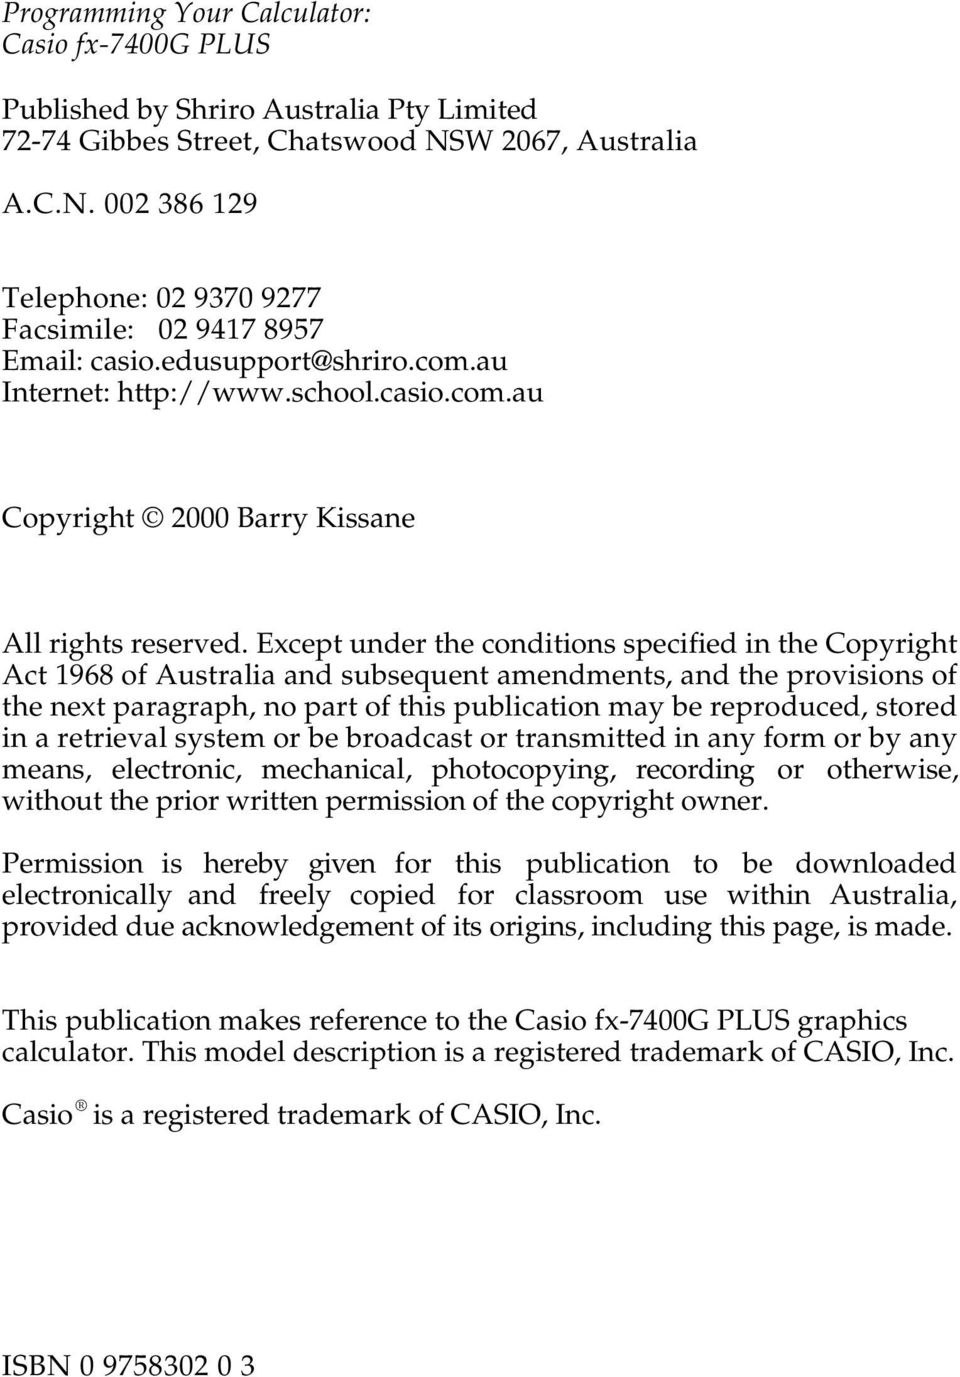 Except under the conditions specified in the Copyright Act 1968 of Australia and subsequent amendments, and the provisions of the next paragraph, no part of this publication may be reproduced, stored